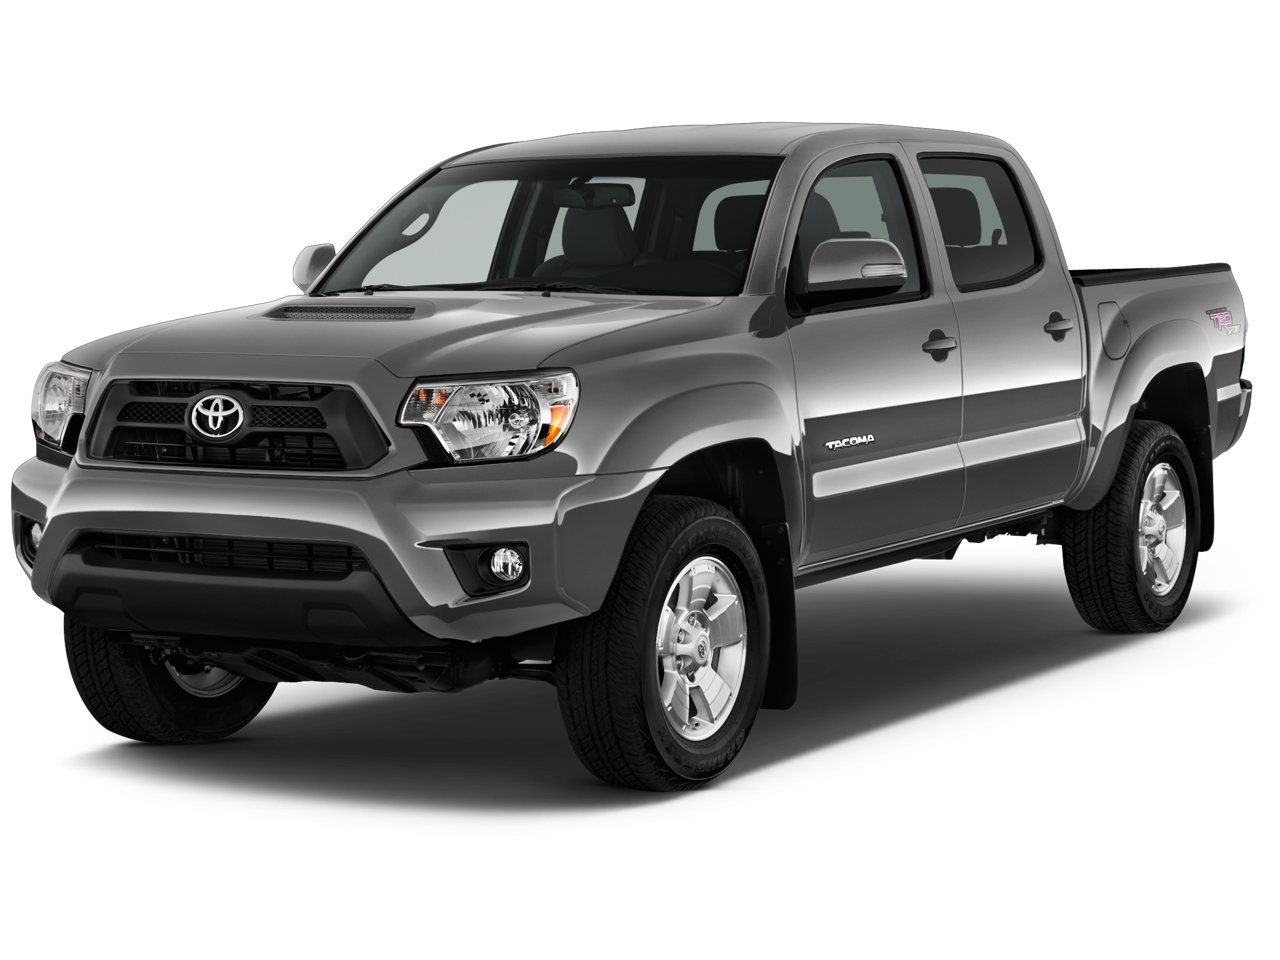 used certified one owner 2015 toyota tacoma double cab 4x4 v6 near woburn ma woburn toyota. Black Bedroom Furniture Sets. Home Design Ideas